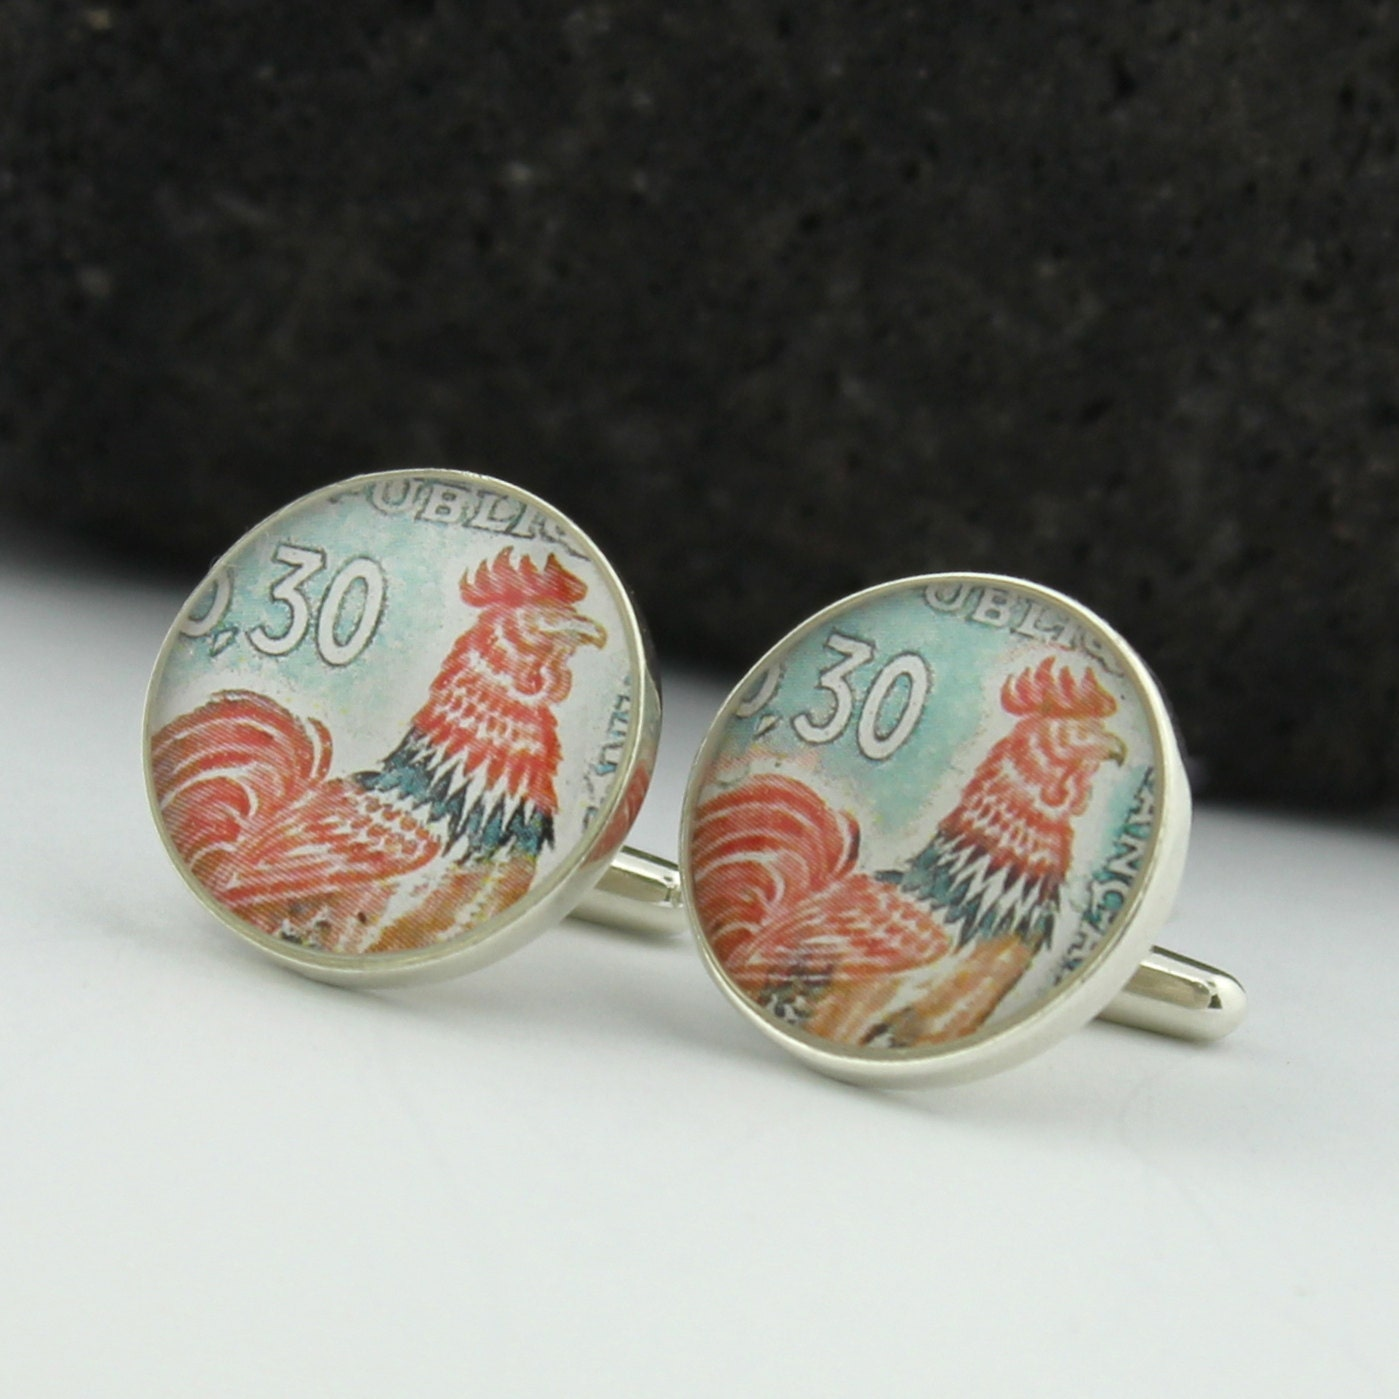 Select Gifts French Cockerel Cufflinks Solid Sterling Silver 925 with Optional Engraved Message Box